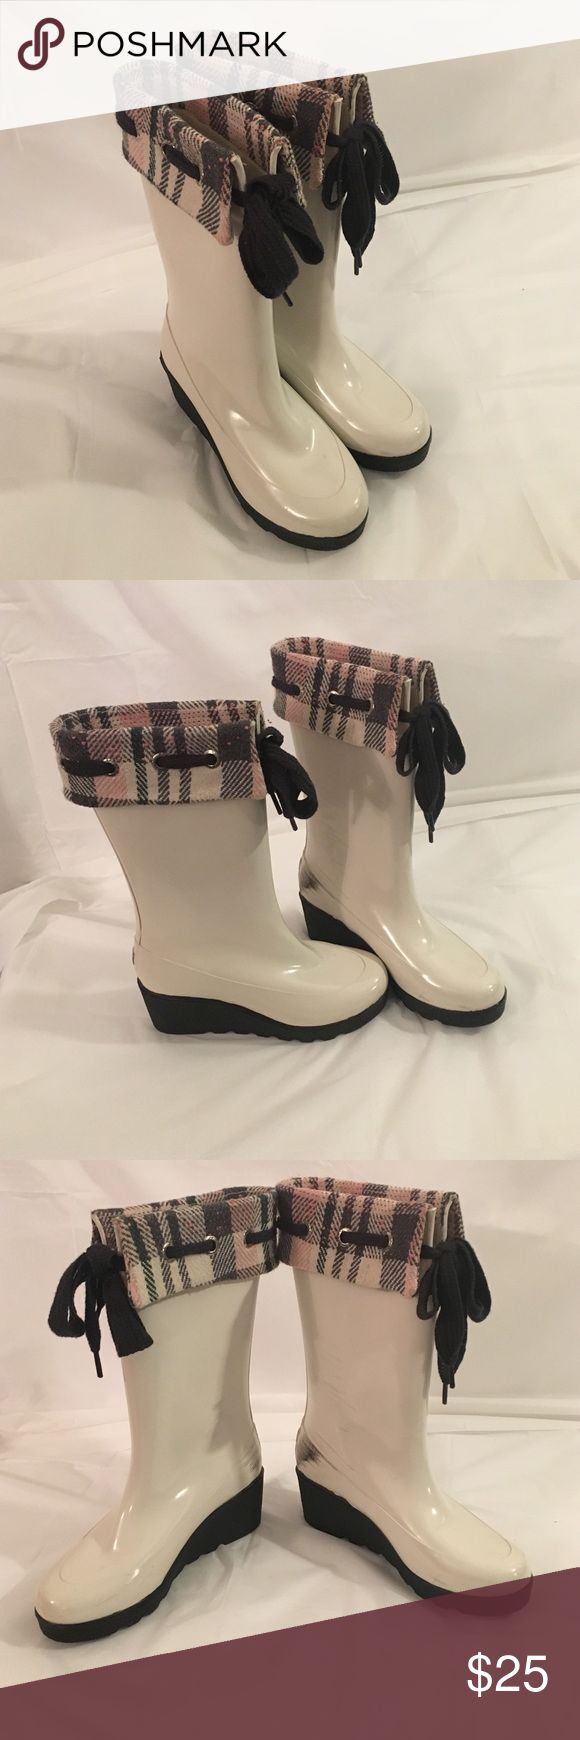 Sperry white rain boots Rain boot with black wedge. Black spots from shoes rubbing. Sperry Top-Sider Shoes Wedges